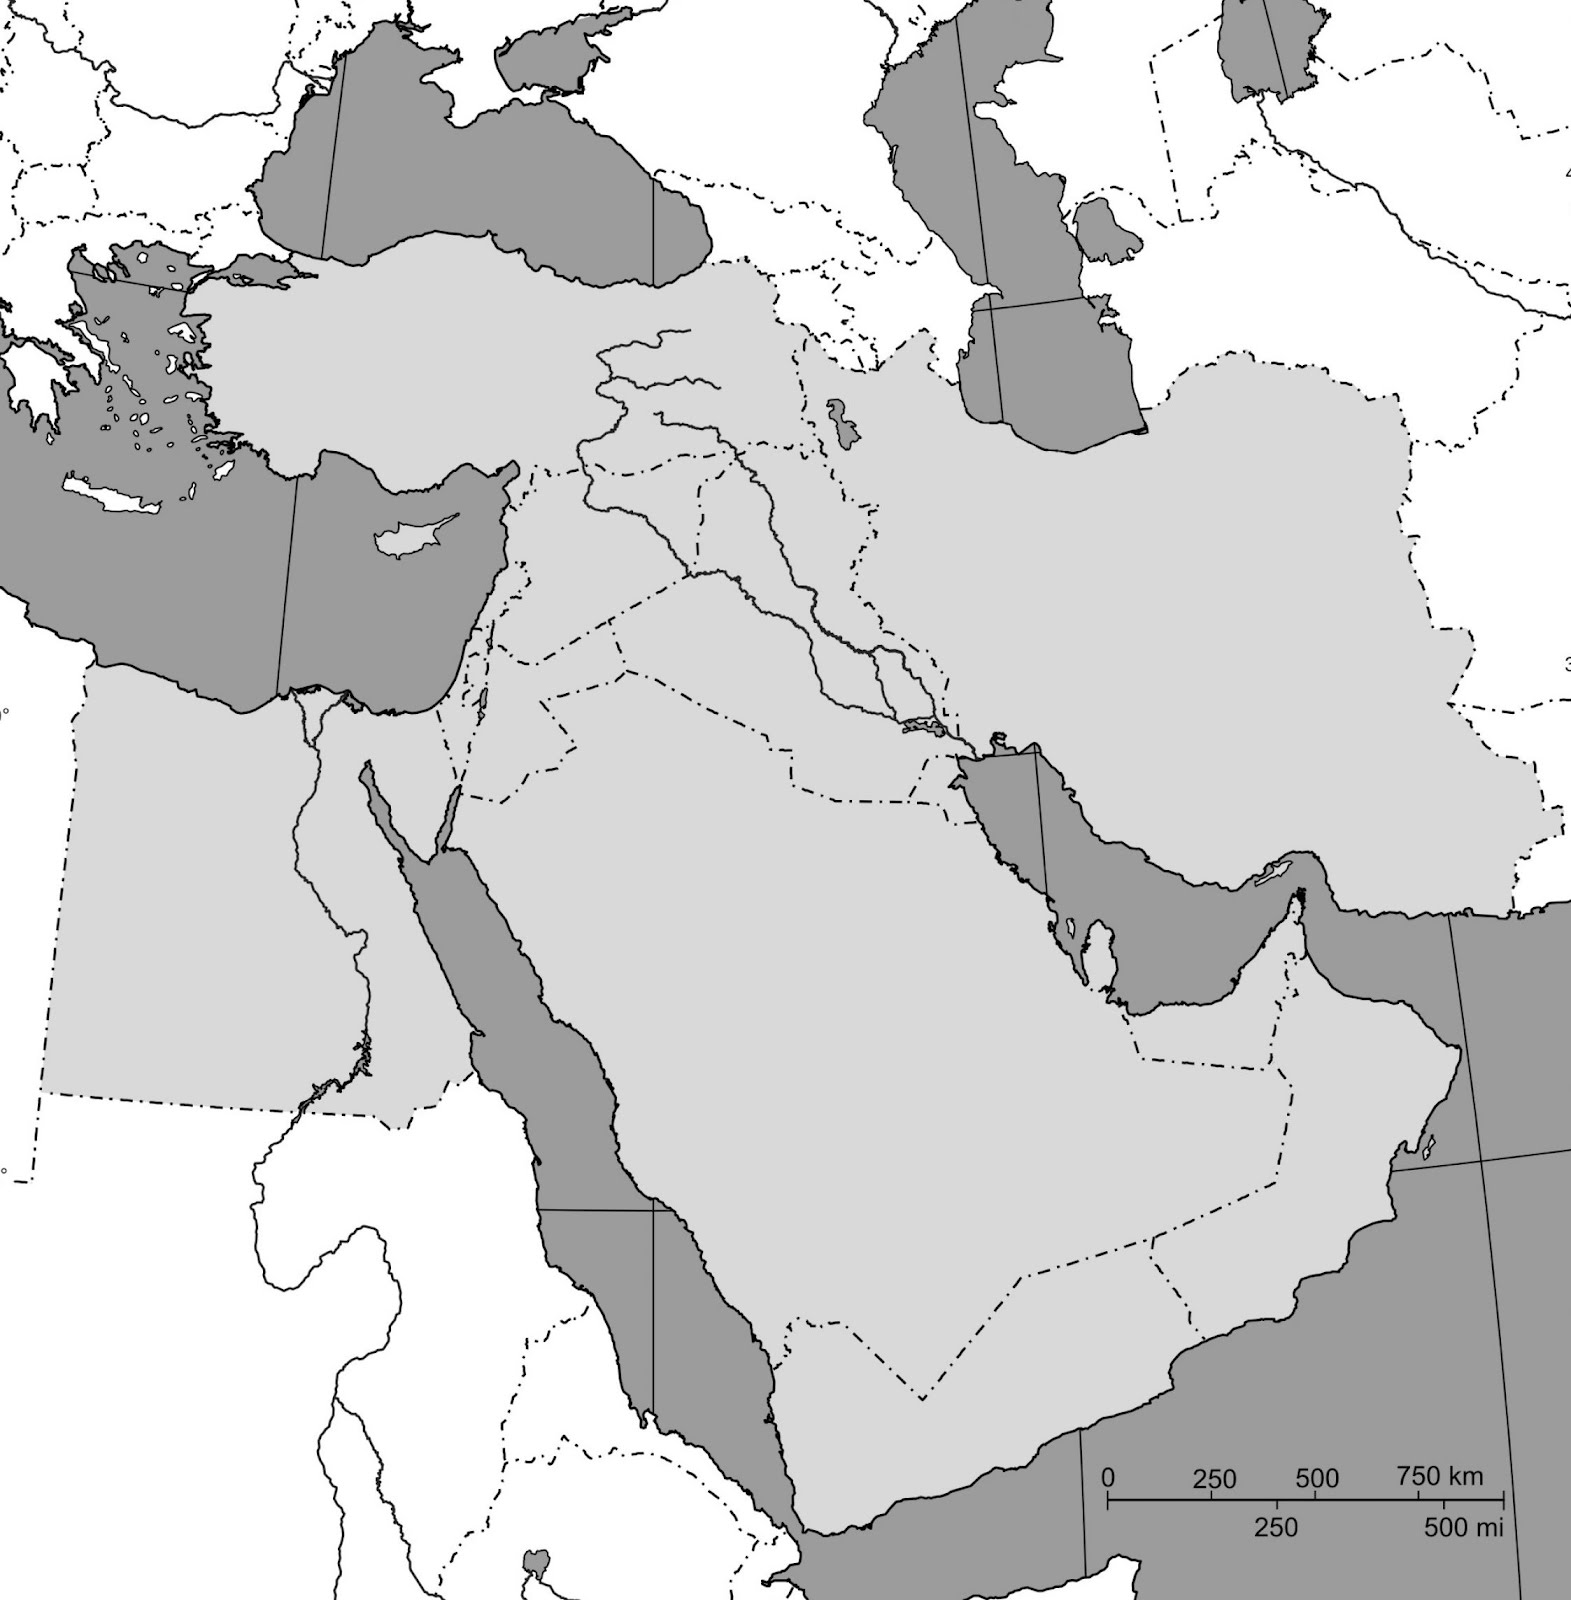 Online Maps: Blank map of Middle East